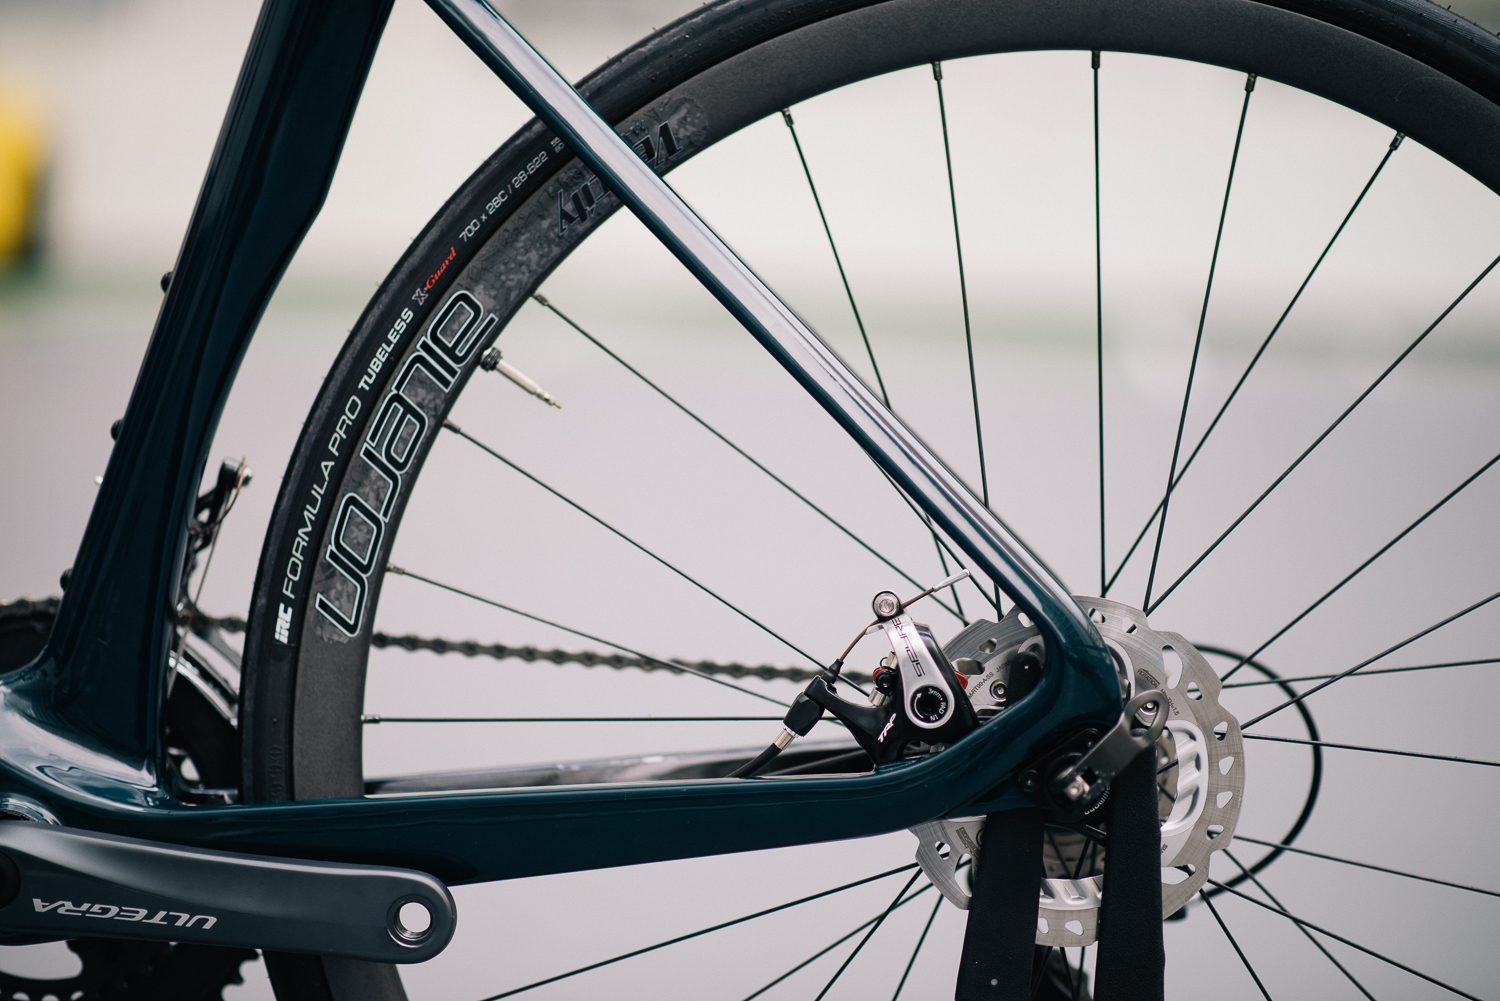 Flat mount disc brake and long chain stay